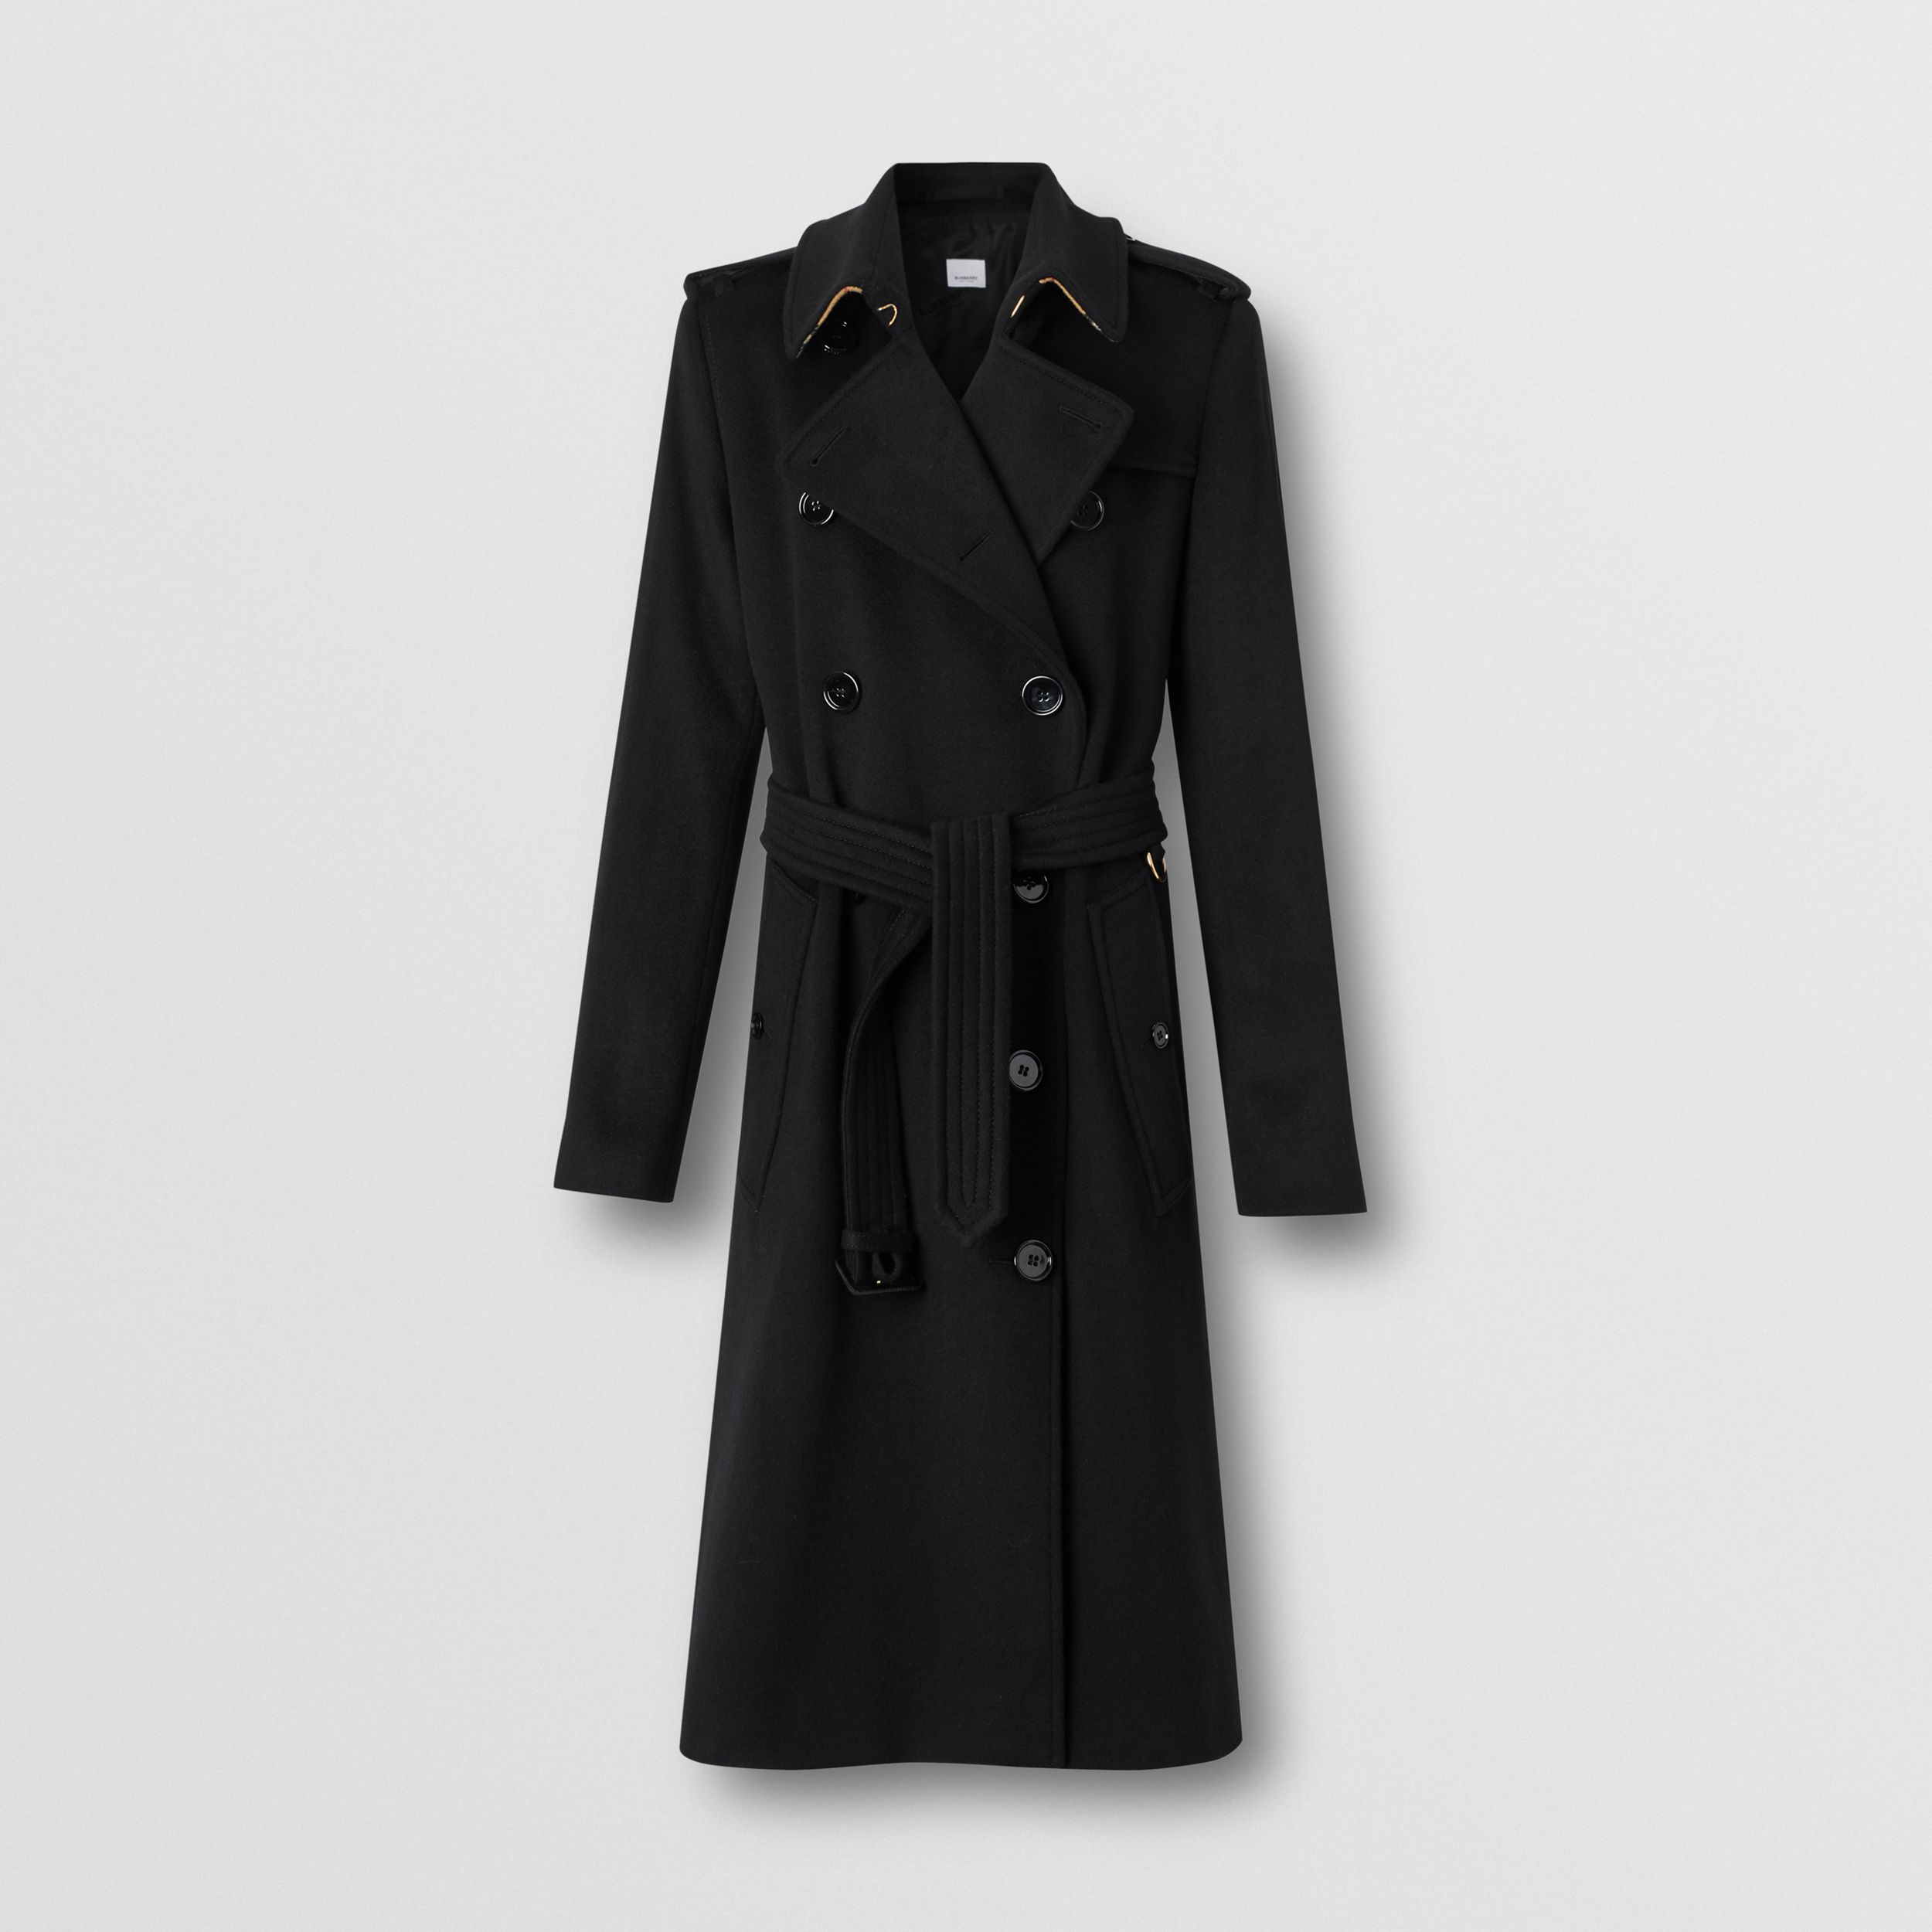 Cashmere Trench Coat in Black - Women | Burberry - 4